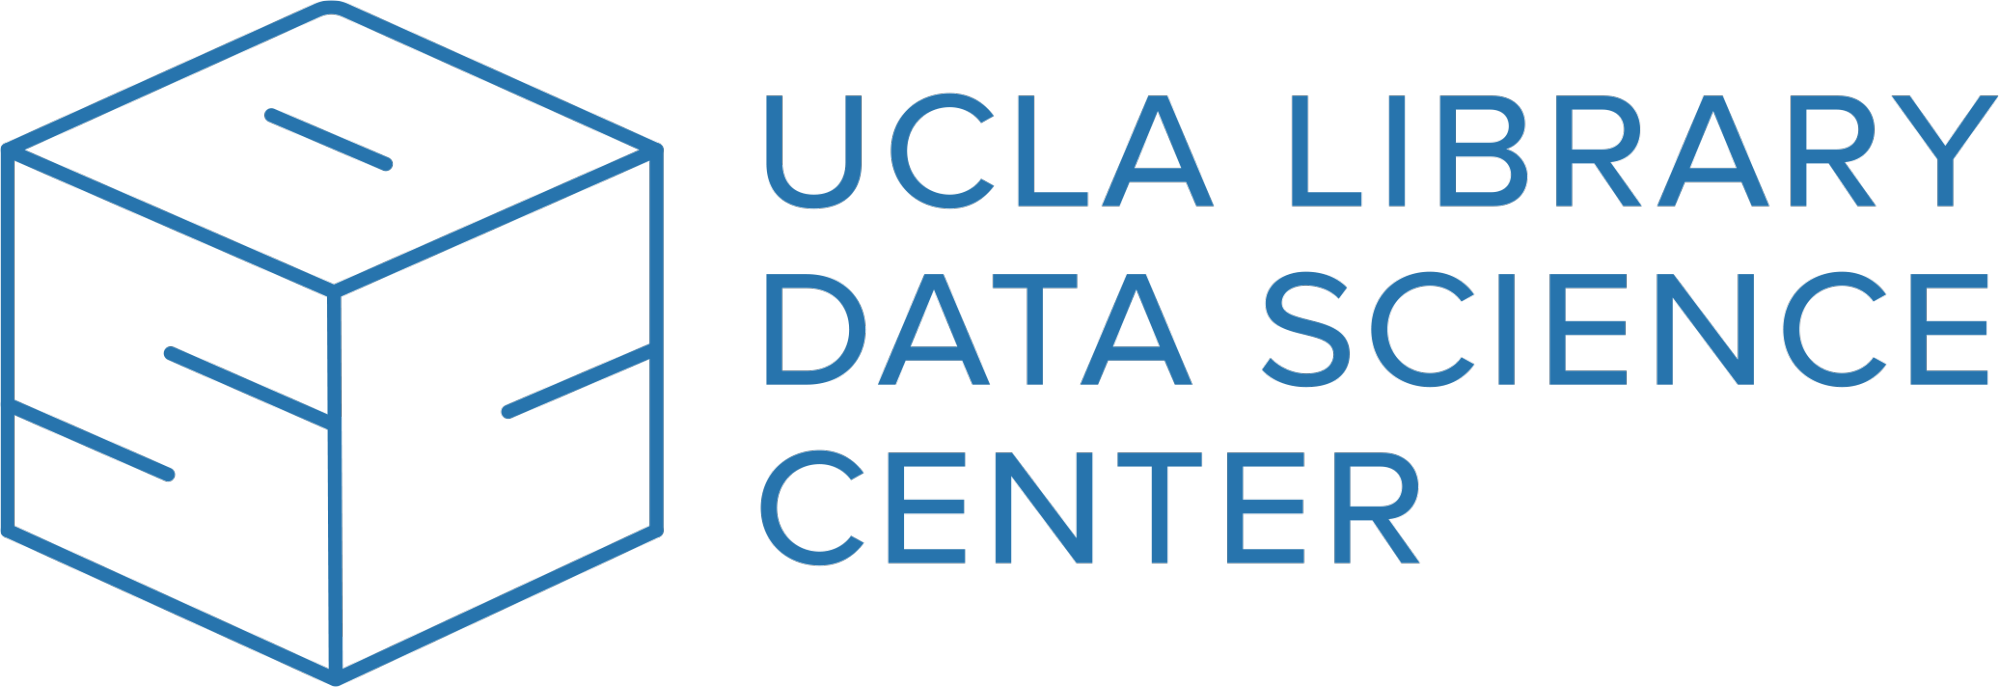 UCLA Library Data Science Center